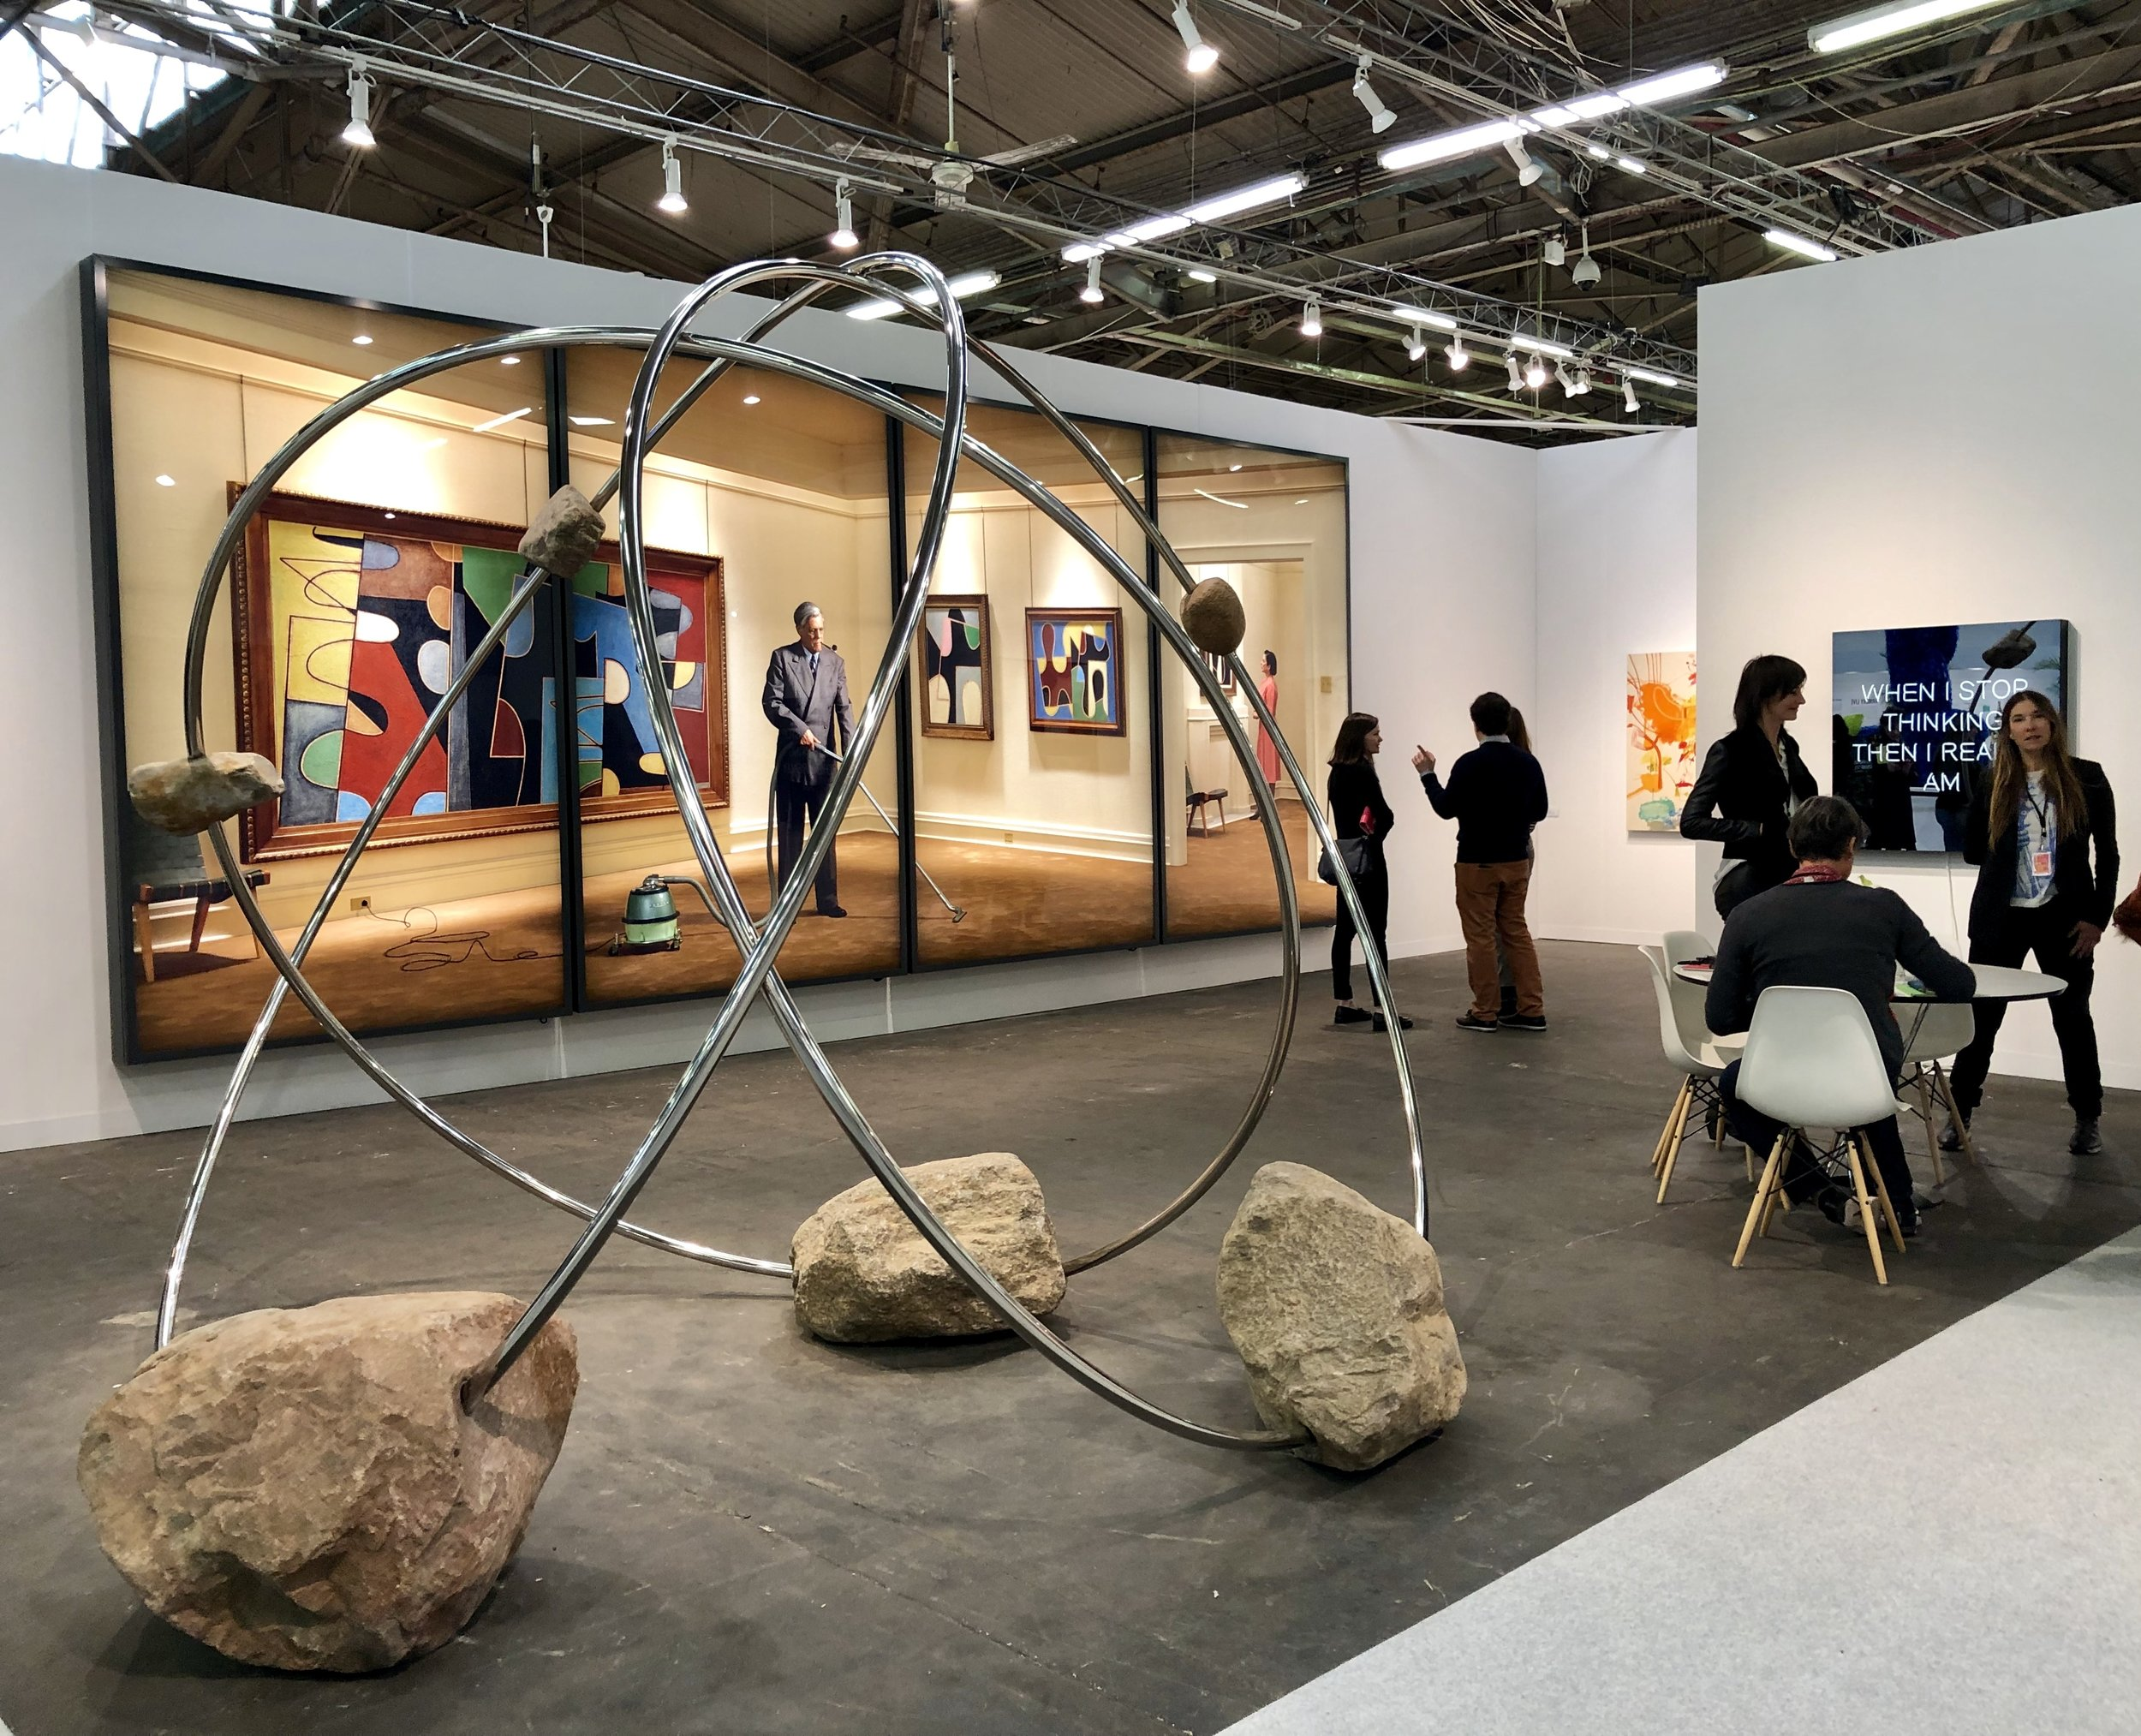 303 Gallery's Booth, photograph by Amie Potsic